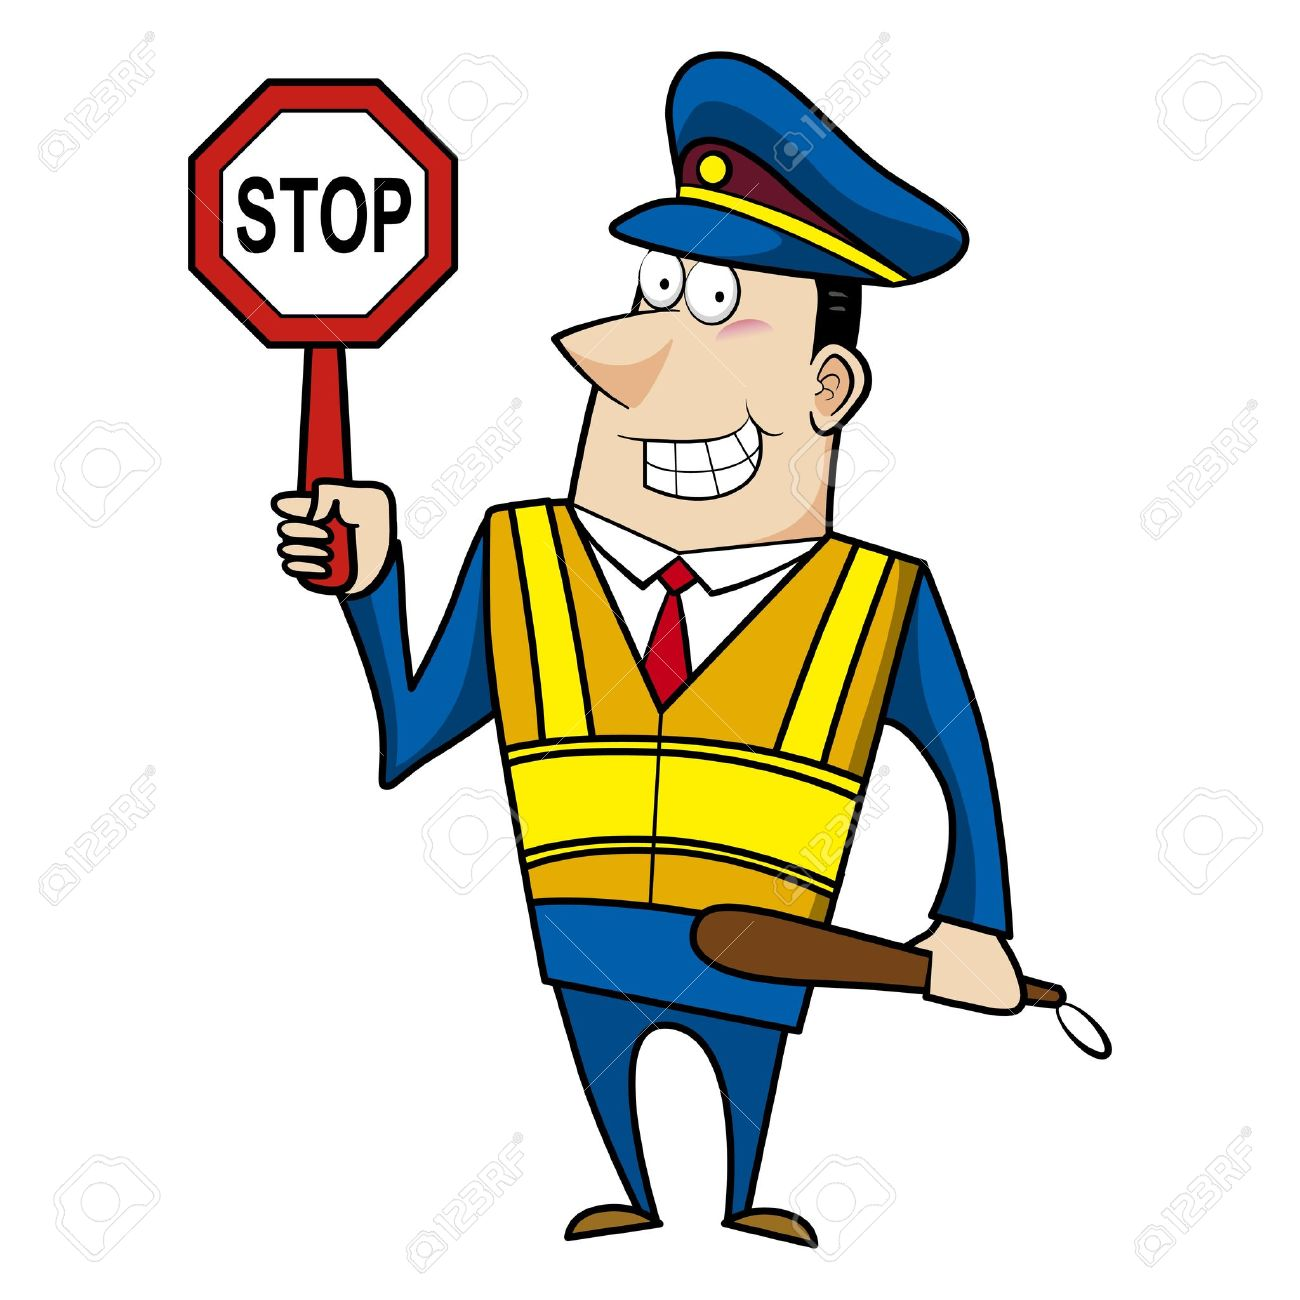 male cartoon police officer holding a stop sign royalty free rh 123rf com